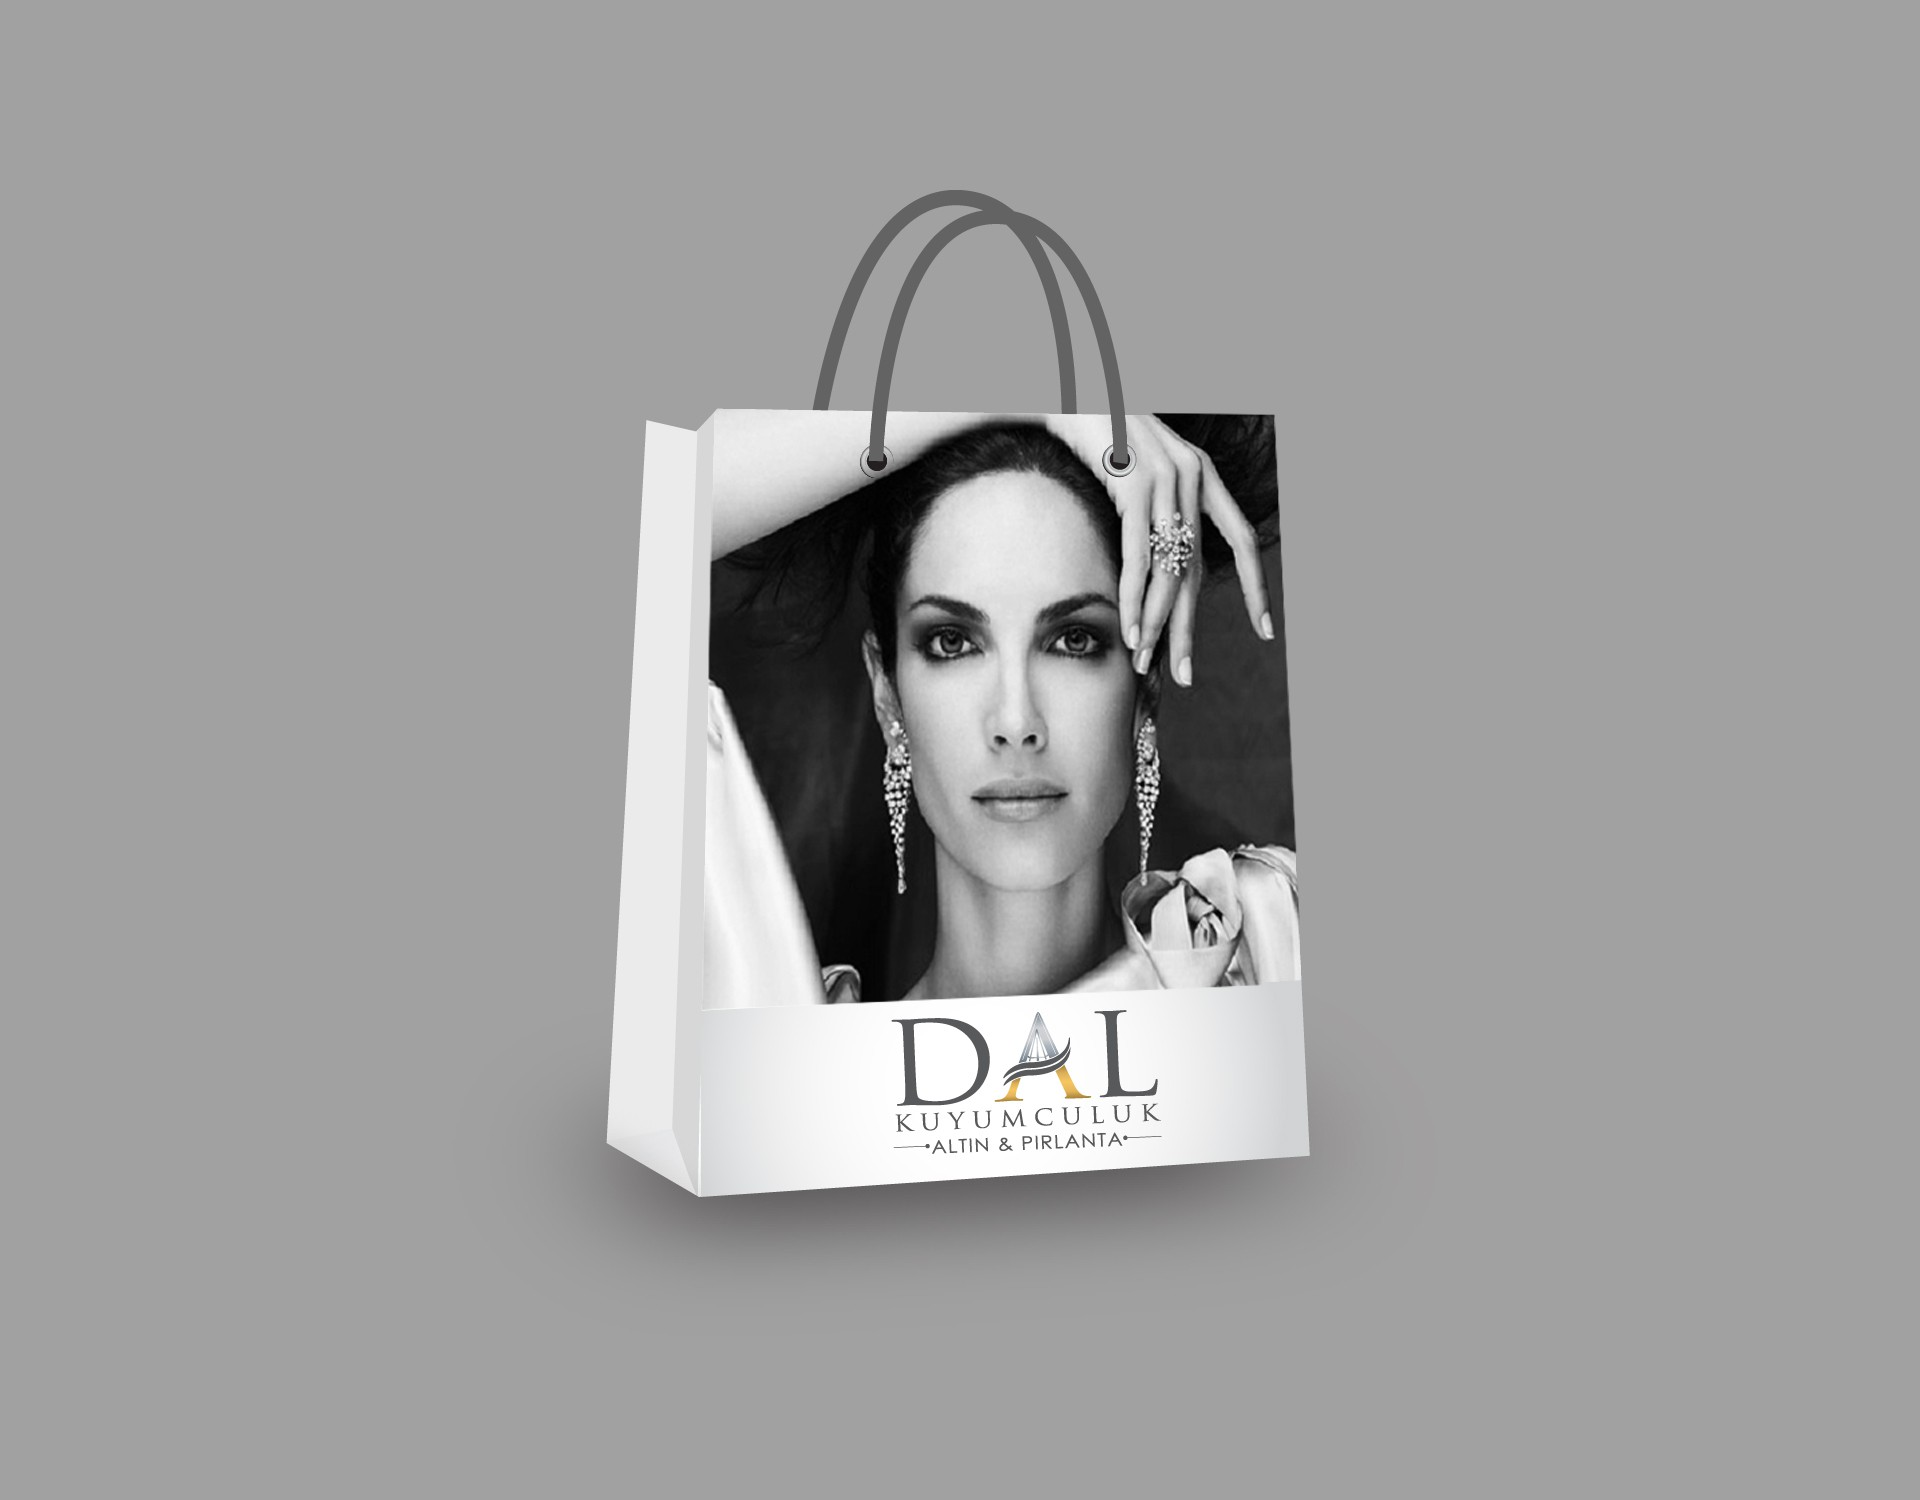 Help DAL KUYUMCULUK with a new merchandise design